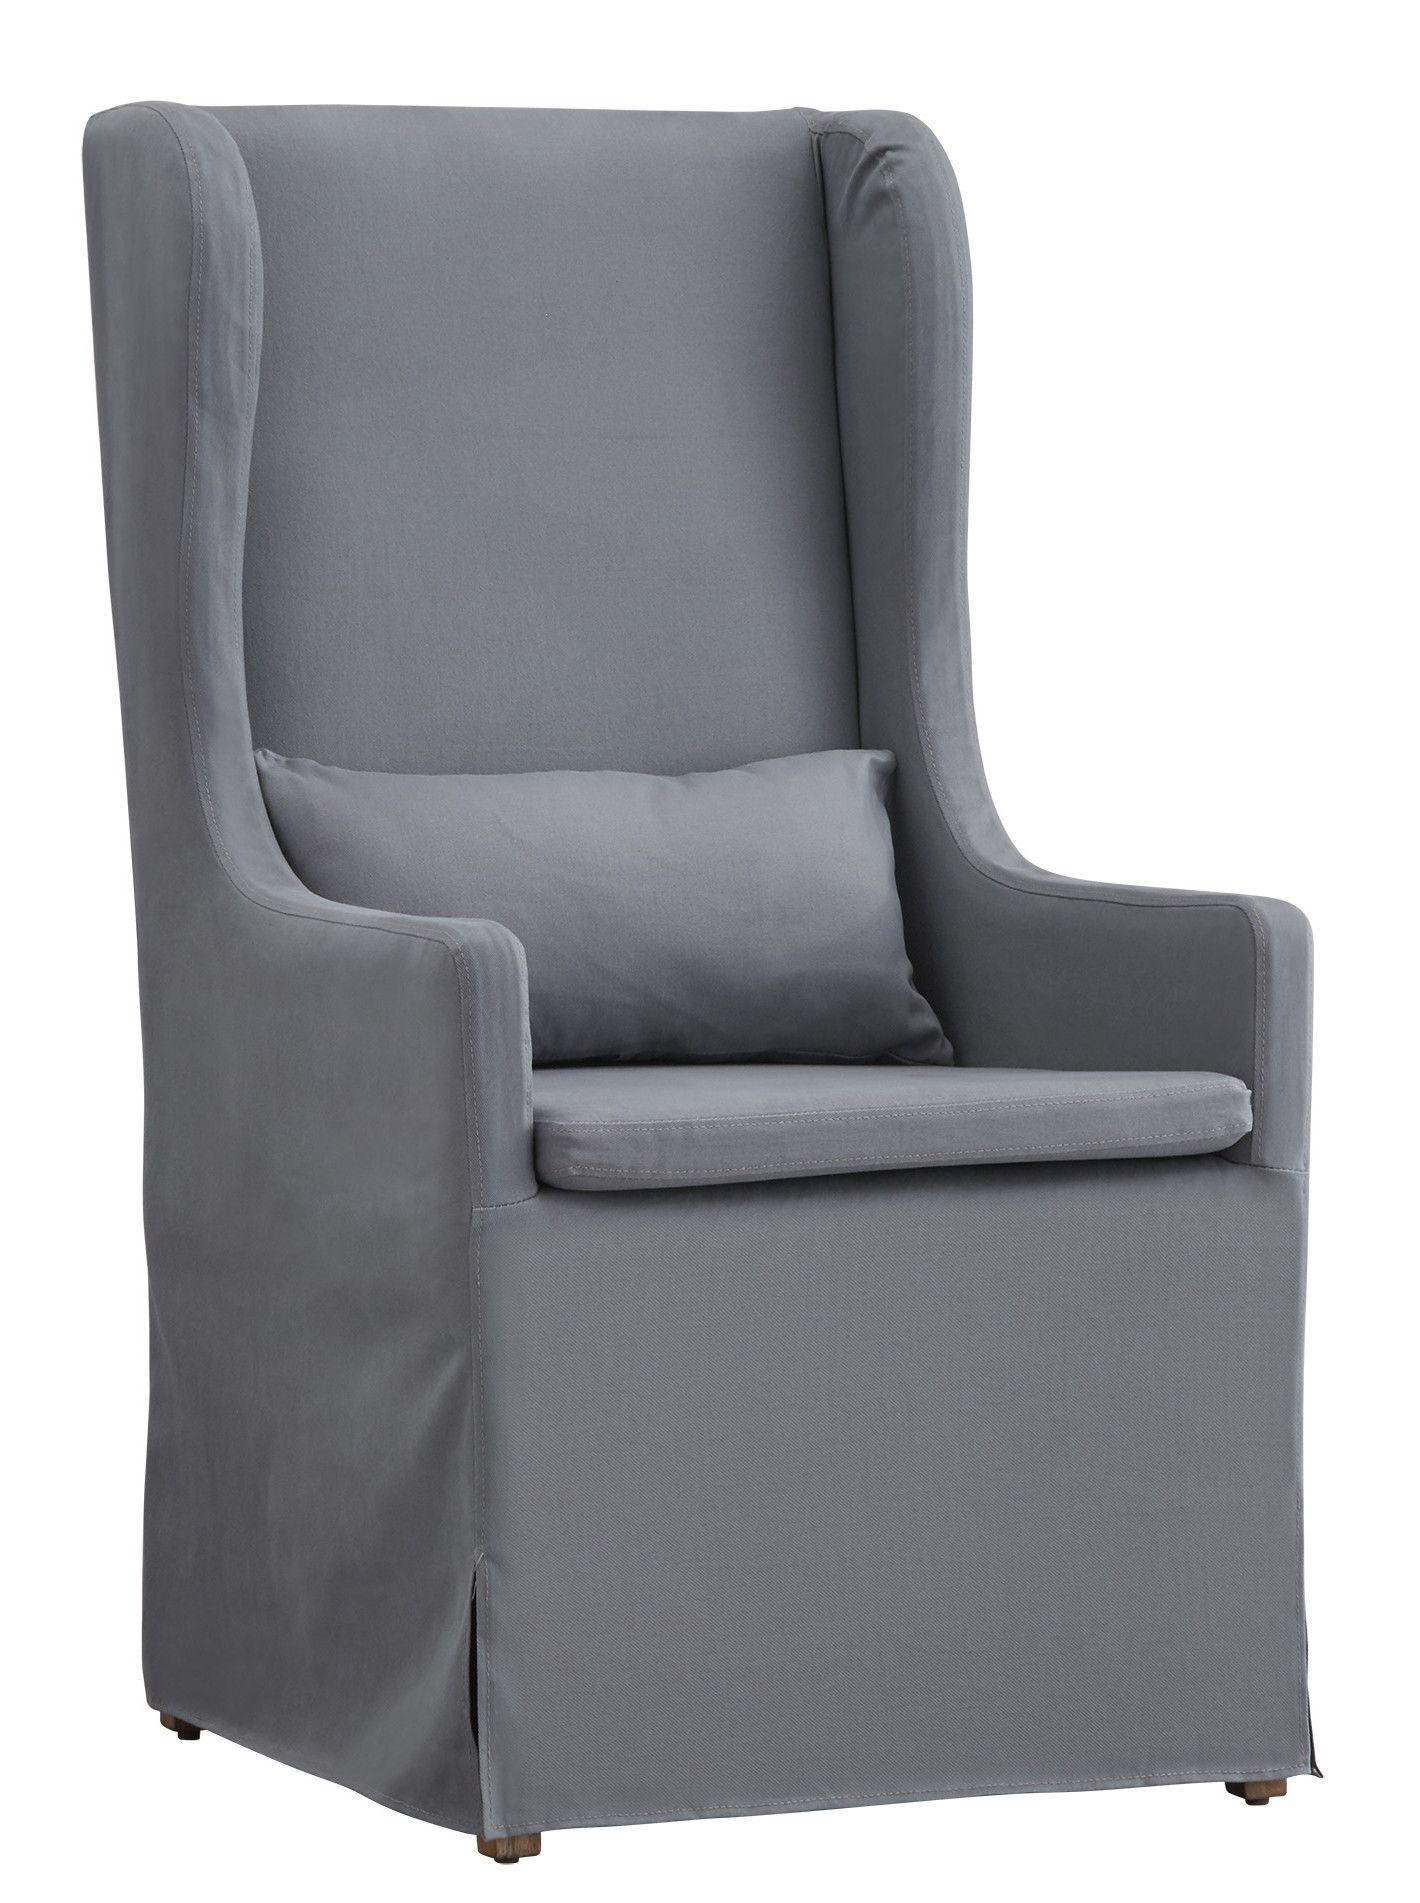 Rooney Slipcovered Wingback Chair